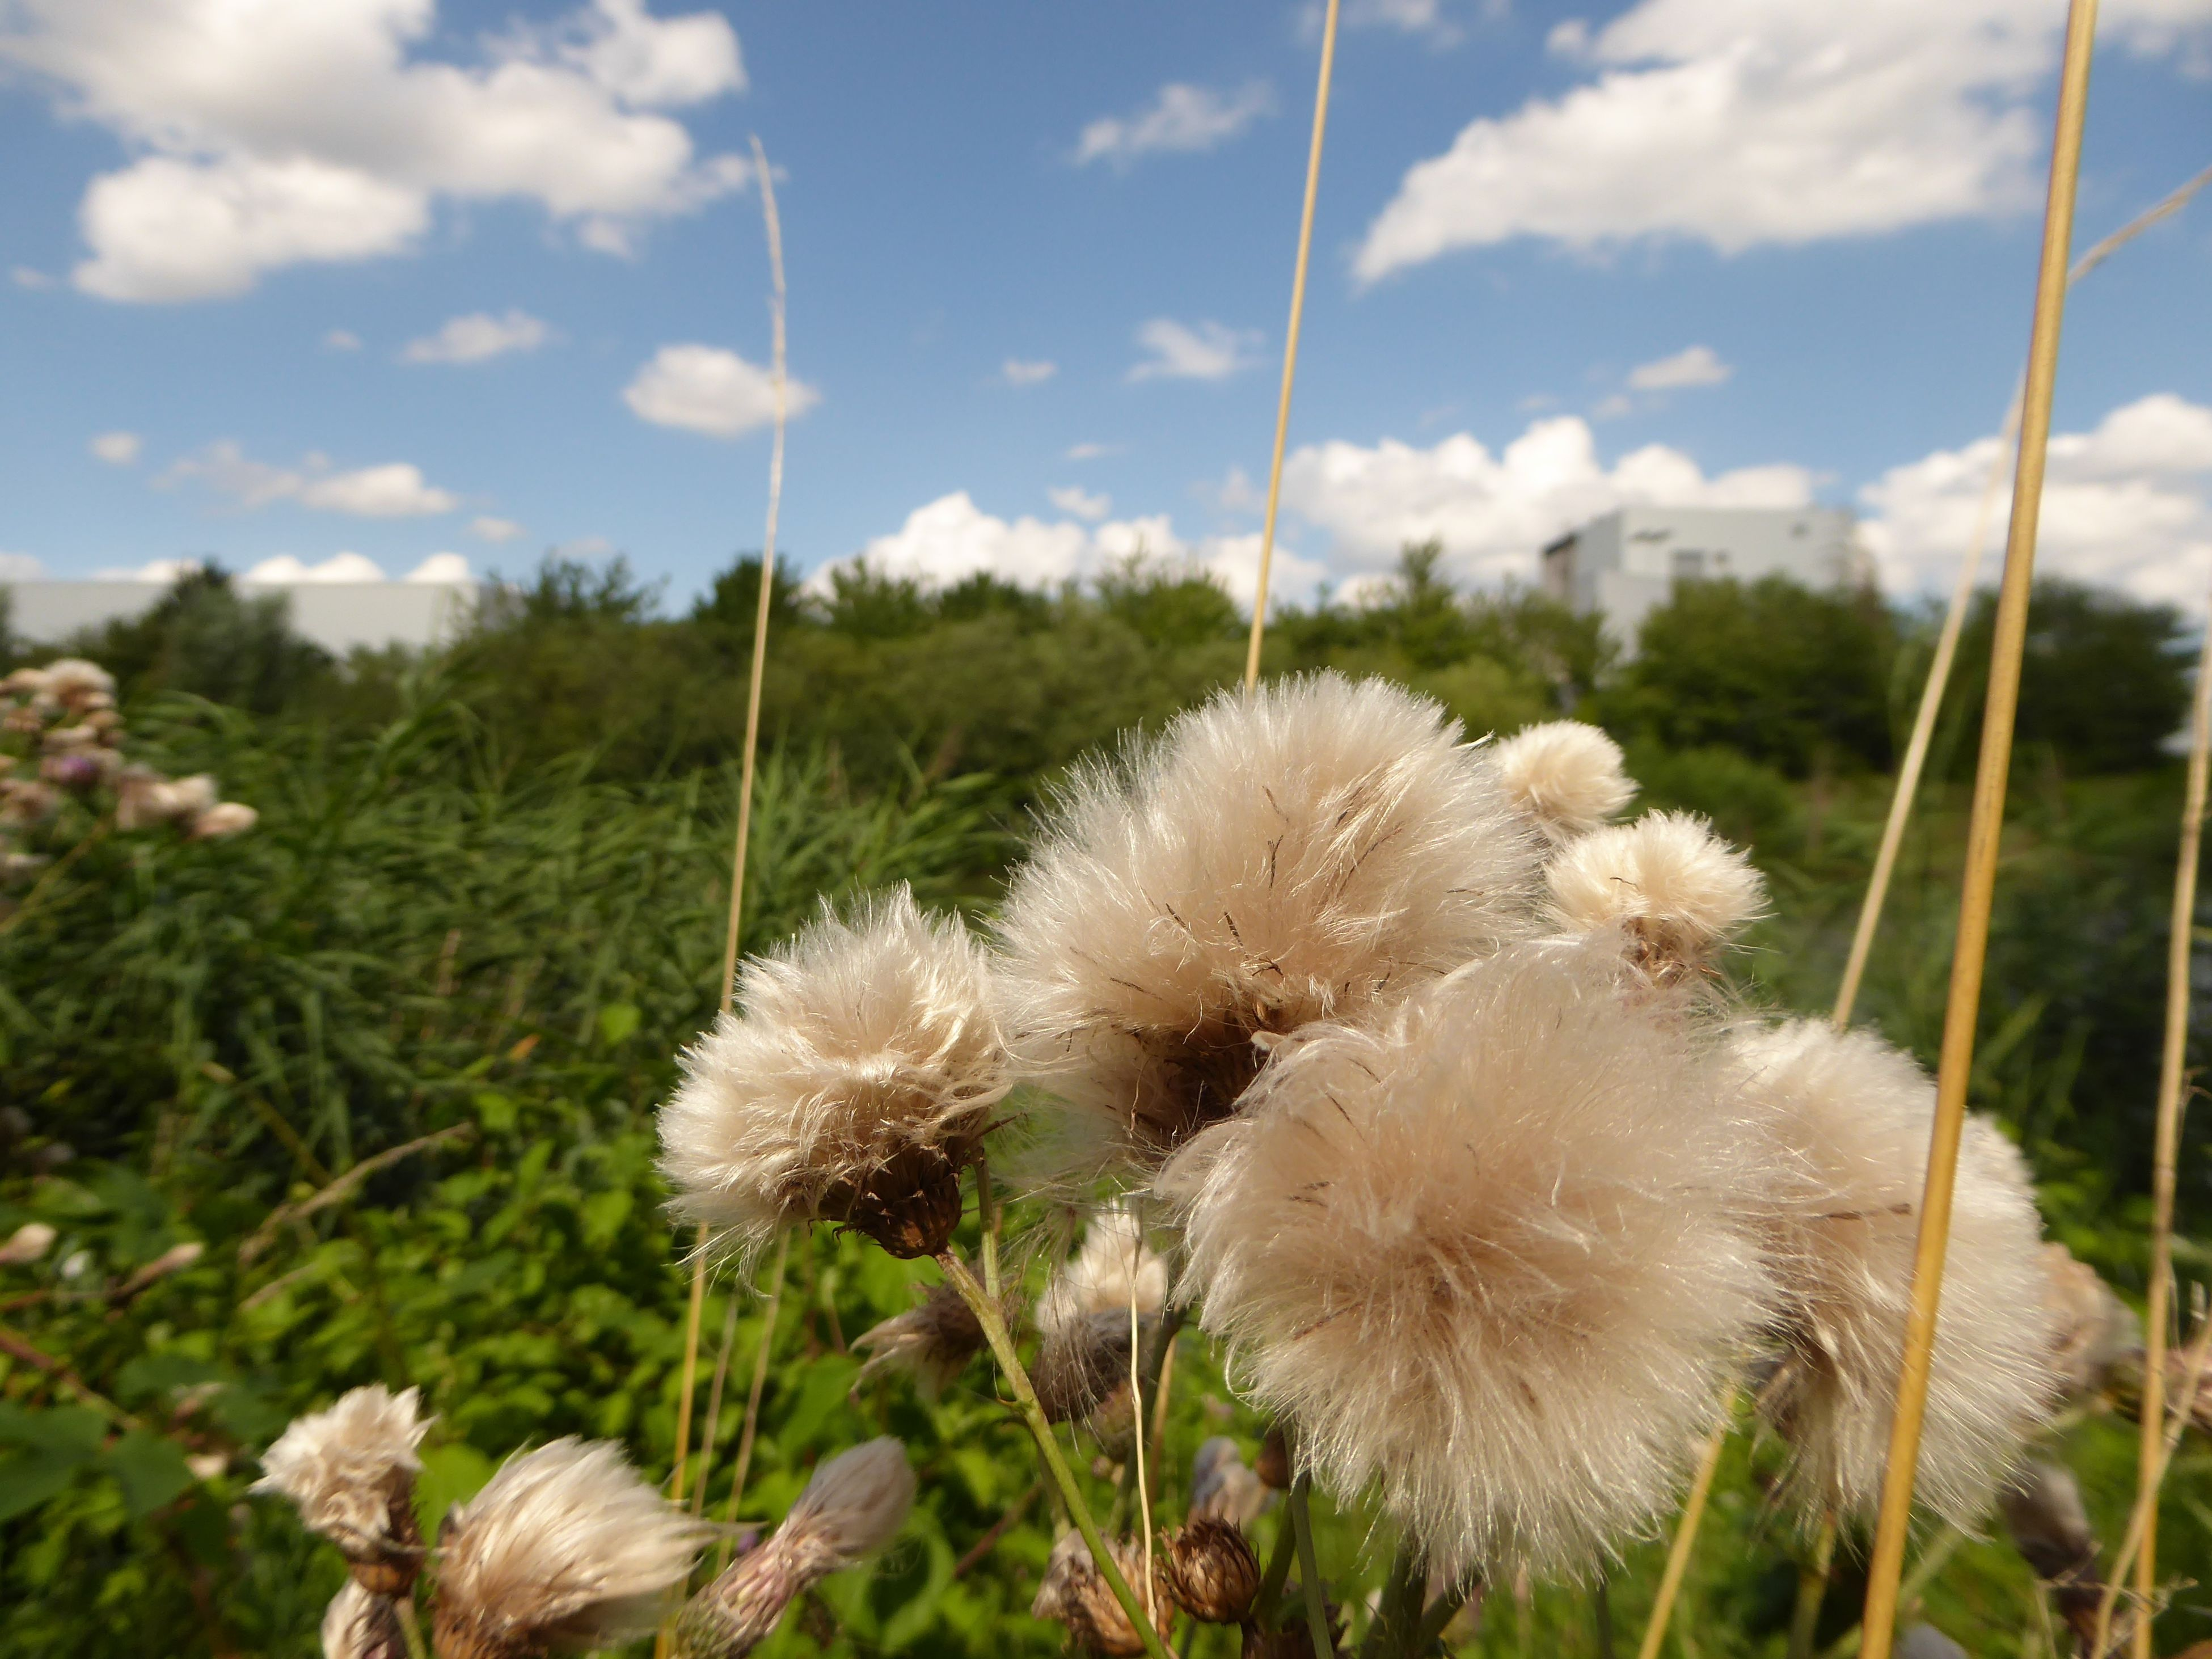 🤗so Schön Puschlig Fuzzy Plants And Clouds Am Mittellandkanal In Hannover Focus On Foreground Close-up Tranquility Lucky Me! Summertime 🌞 You Raise Me Up✨ Summertime🌼🍃🌺🌷☘️🌿😍✨ For The Love To Life My Soul's Language Is📷 Thankful🦄 AfterworkchillenamKanal😎 Nature Beautiful Summerday Radlweg For My Friends 😍😘🎁 Flower Head